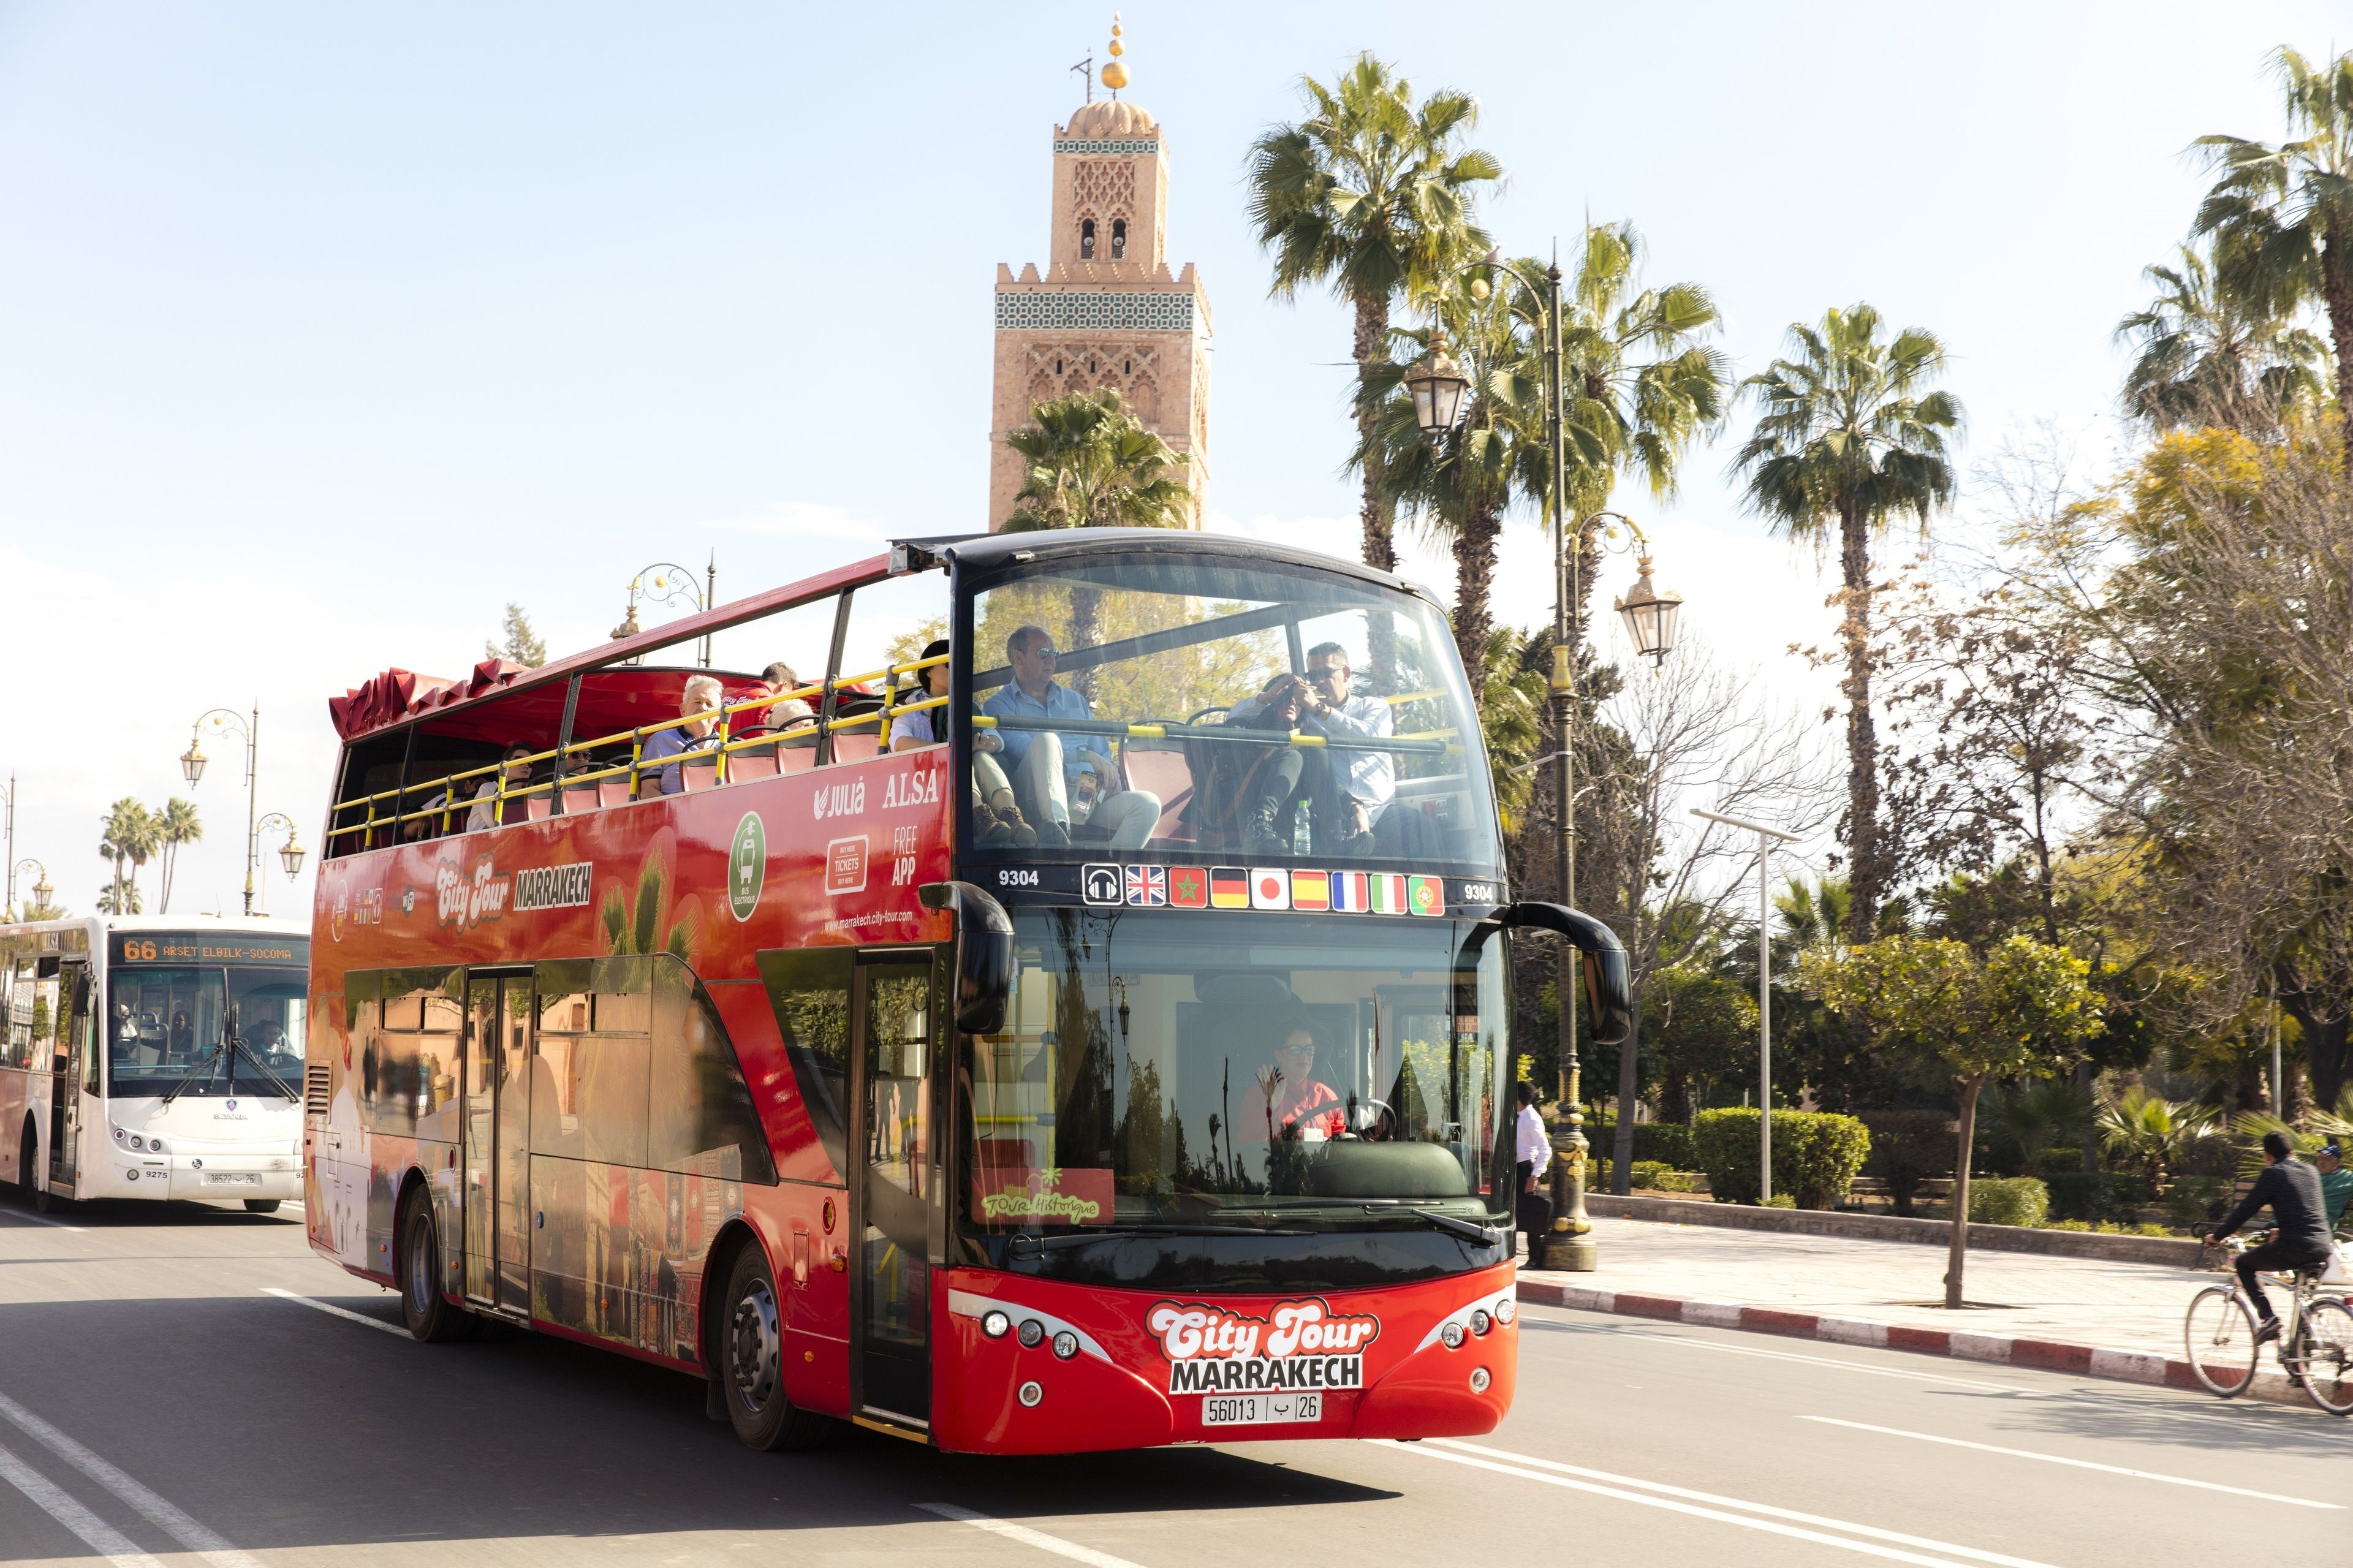 Bus driving on the street on the Hop On-Hop Off Marrakech City Tour